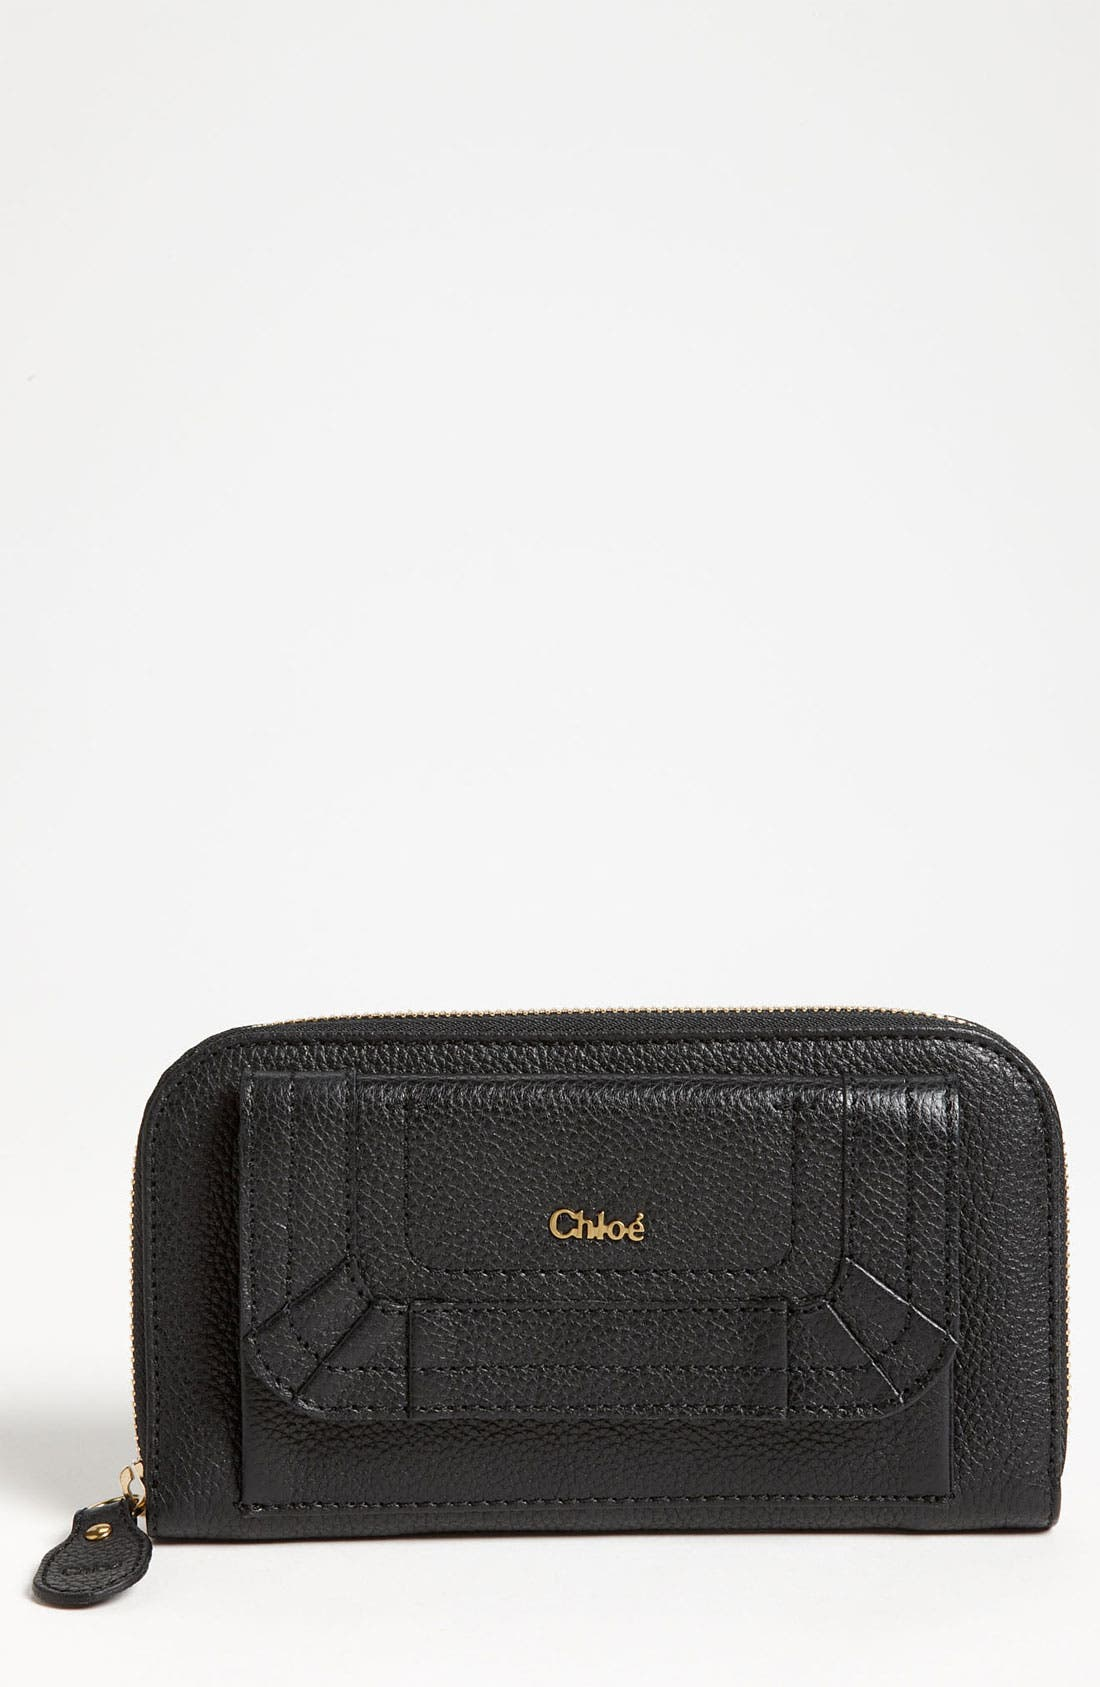 Main Image - Chloé 'Paraty' Leather Wallet